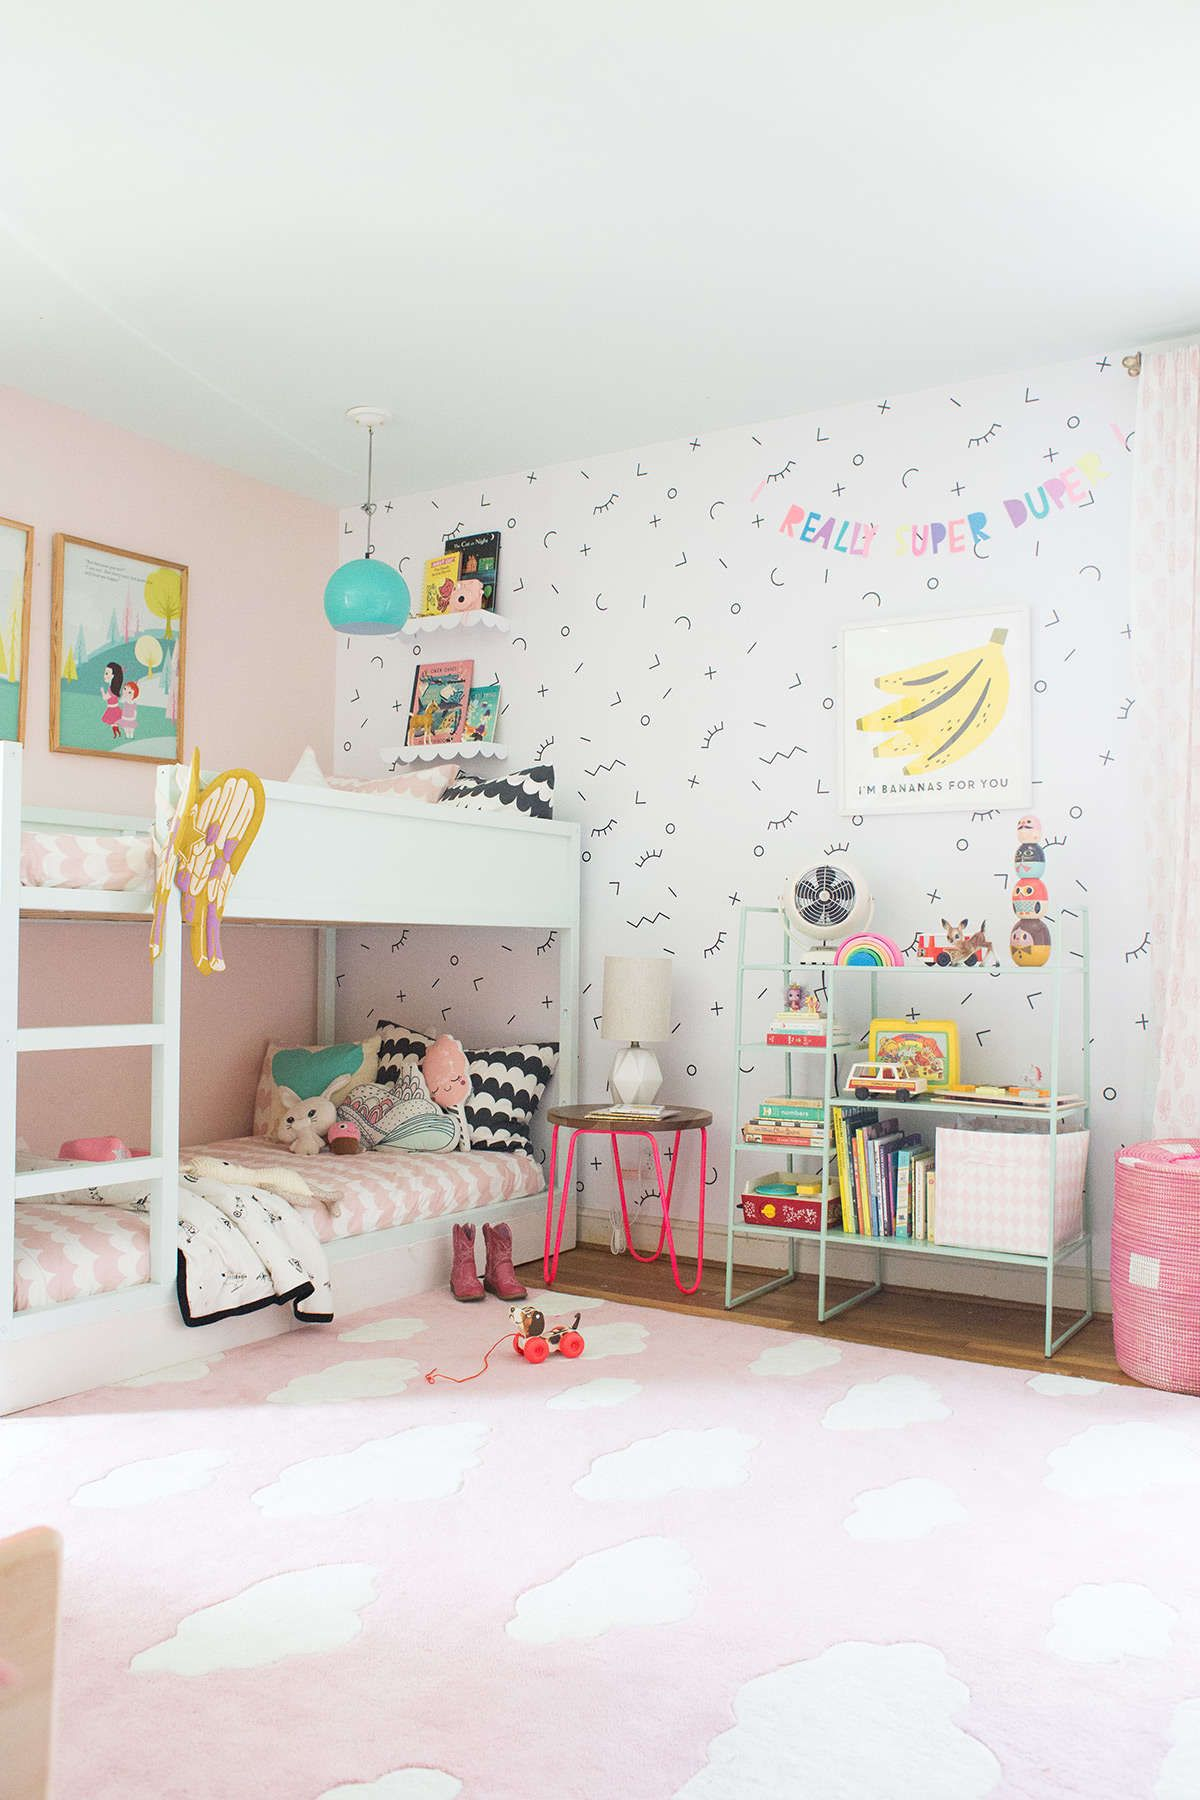 A Shared Bedroom With Bunk Beds Diakosmhsh Spitioy Paidiko